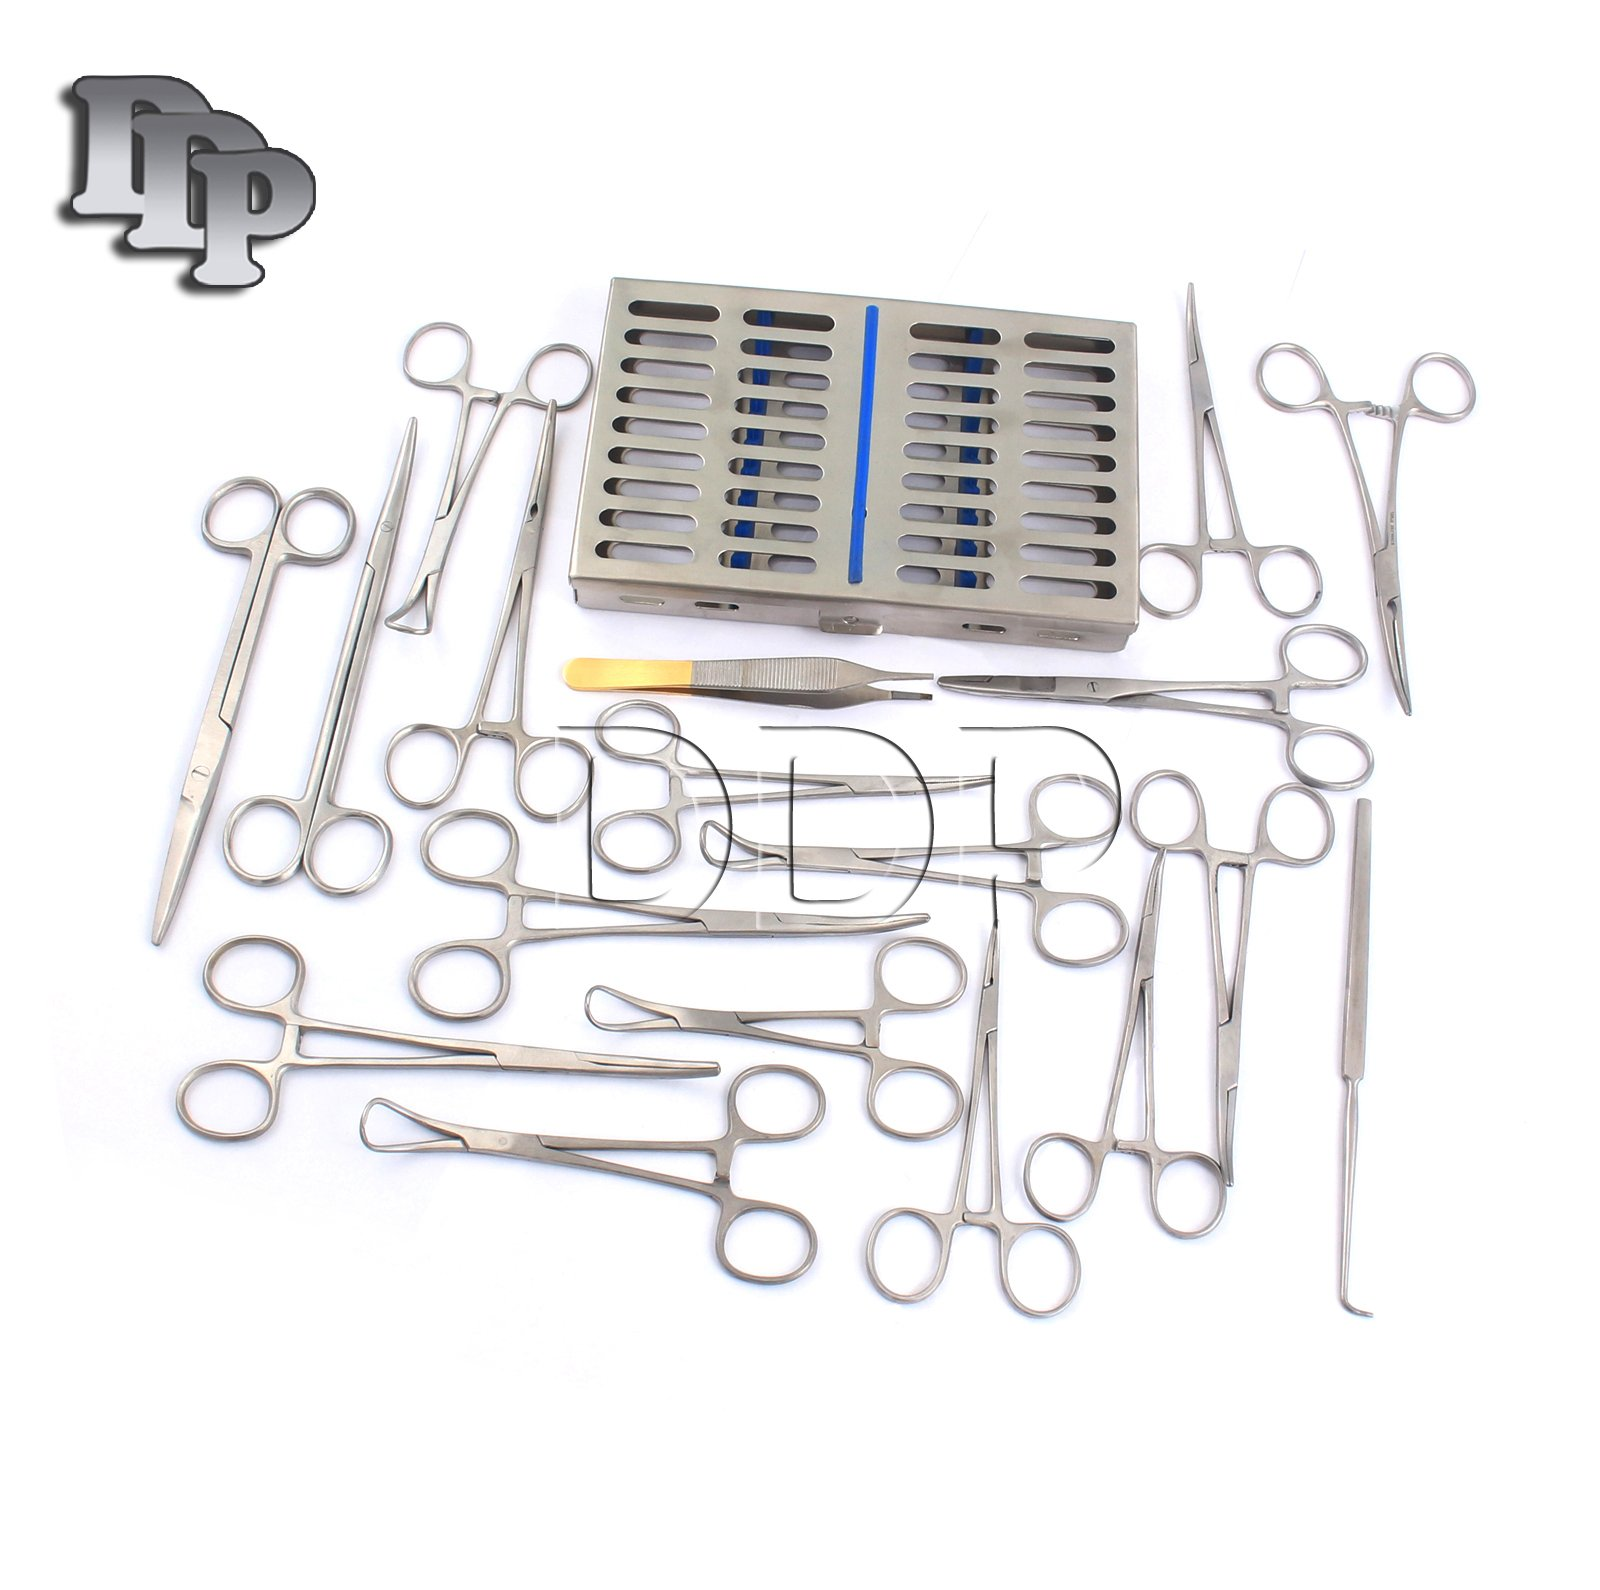 DDP NEW O.R GRADE GENERAL BASIC DENTAL VETERINARY INSTRUMENTS SET ! SPAY PACK DENTAL INSTRUMENTS HIGH QUALITY by DDP